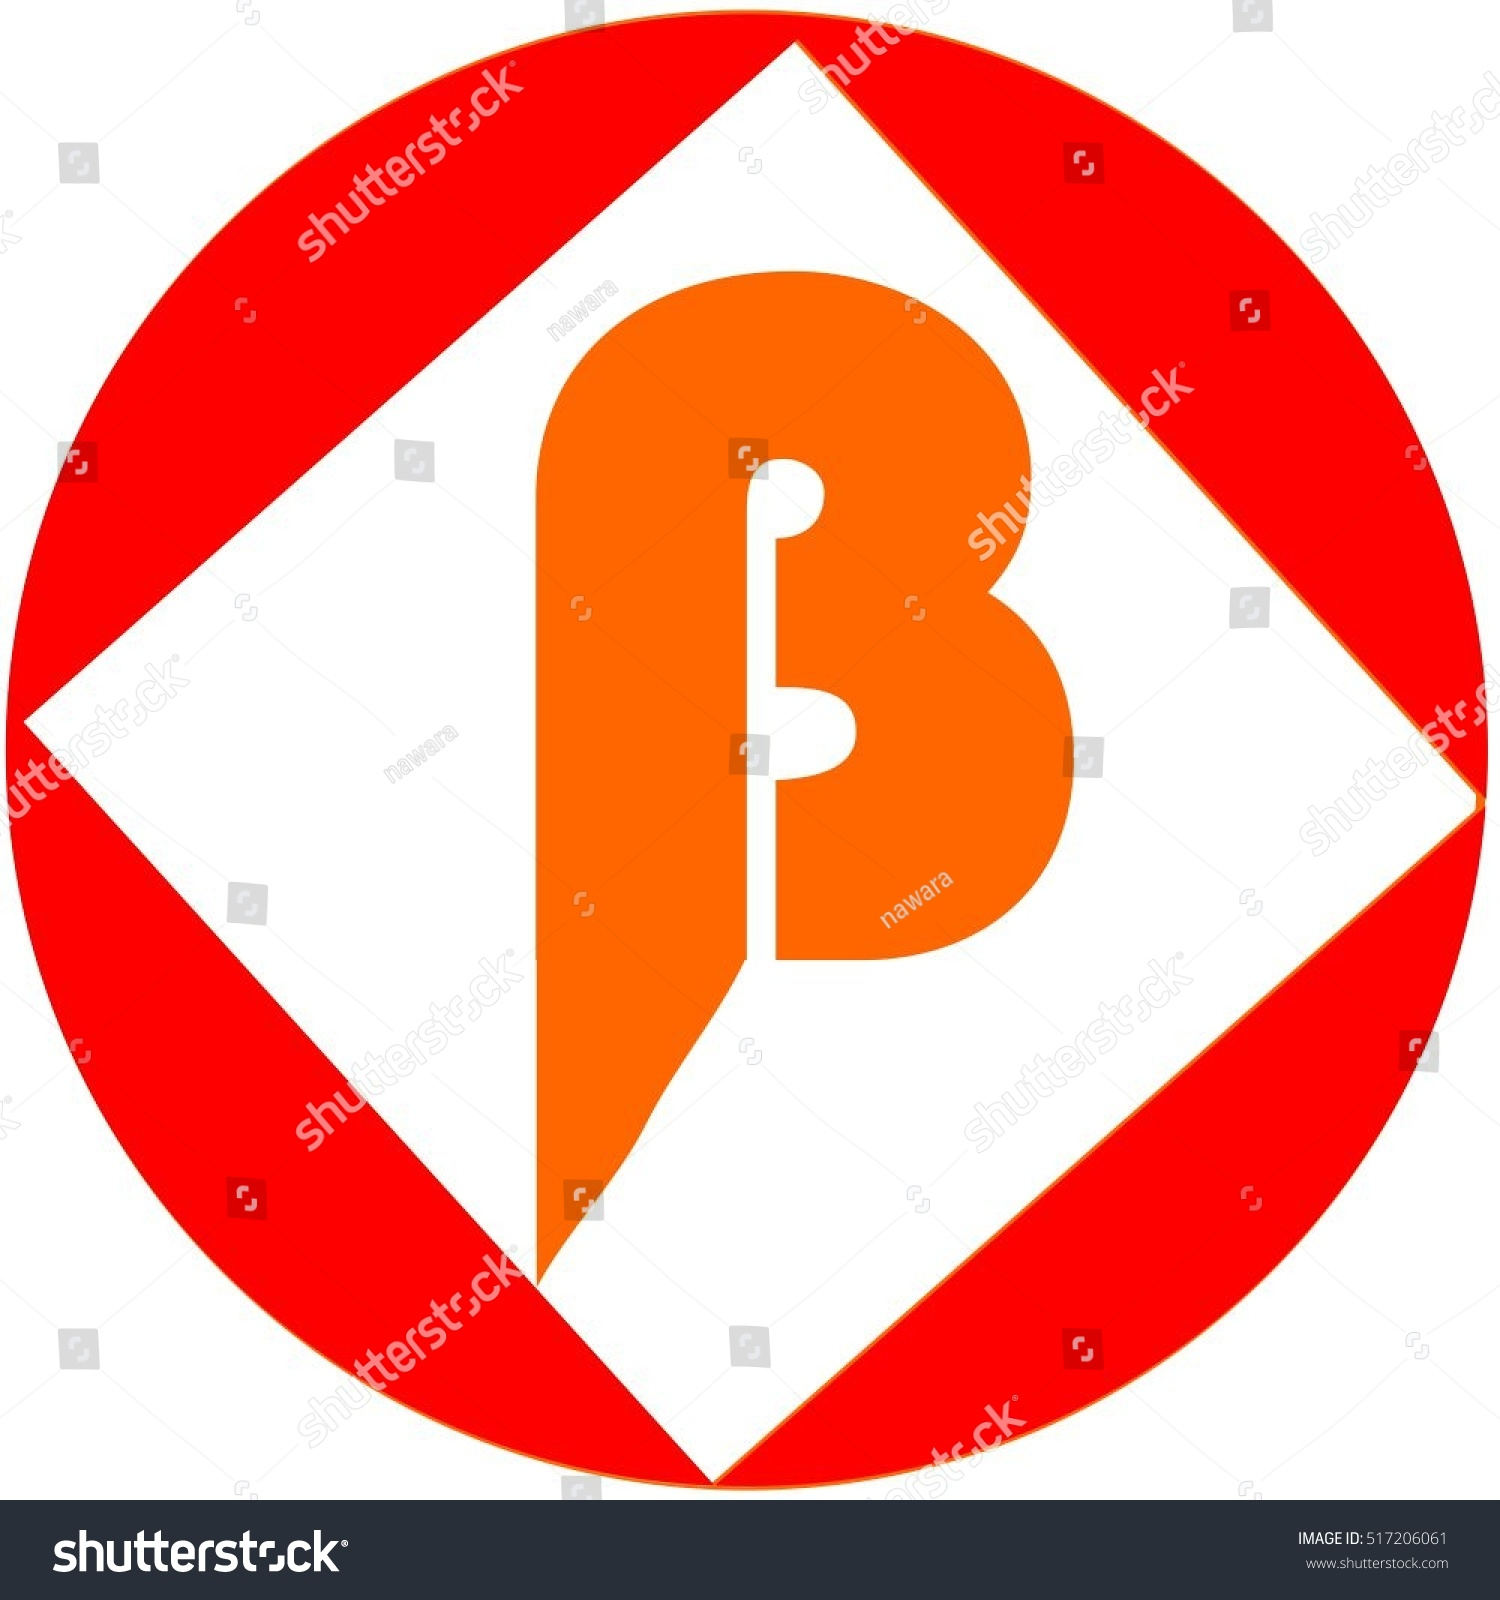 Abstract letter b logoalphabet logo designvector stock vector abstract letter b logophabet logo designctor template pronofoot35fo Image collections